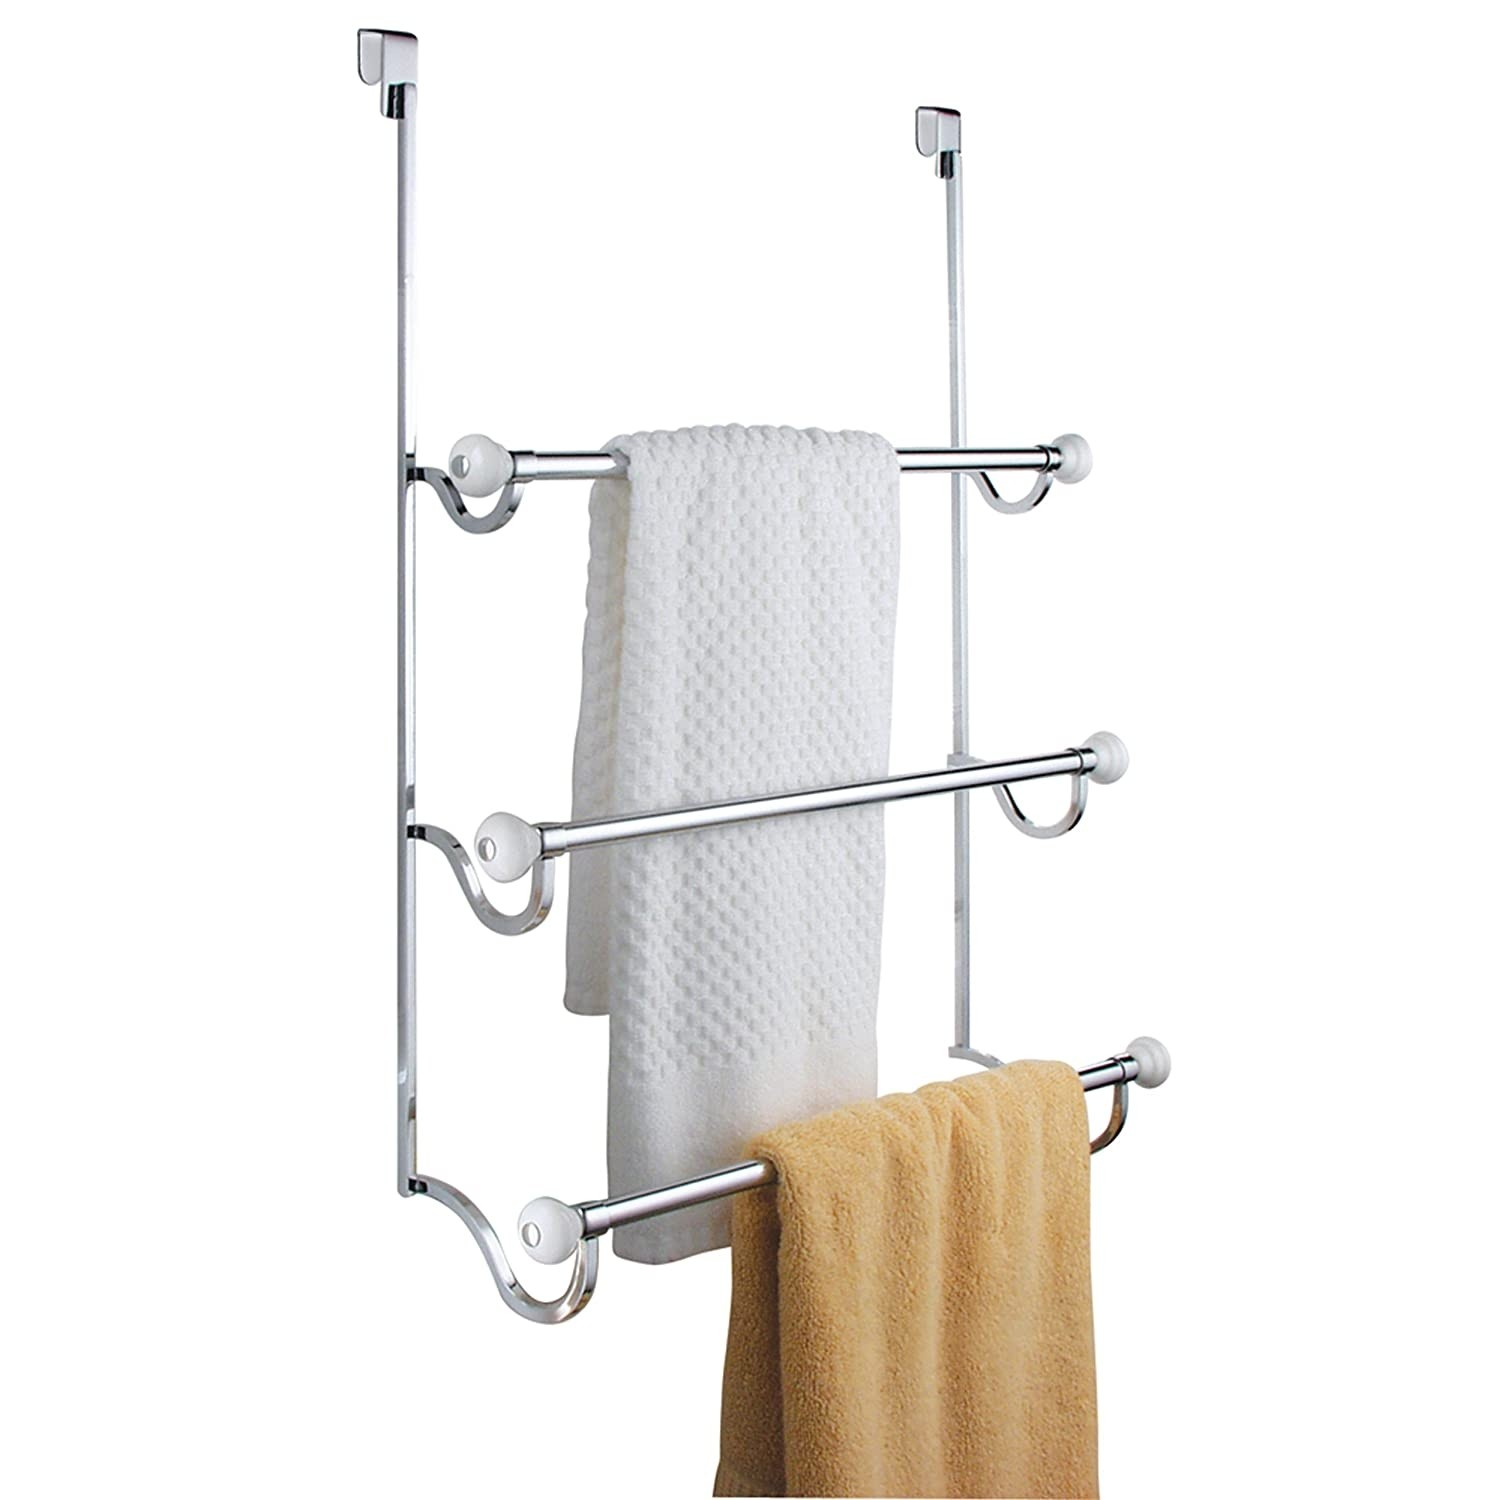 Door Towel Racks For Bathrooms